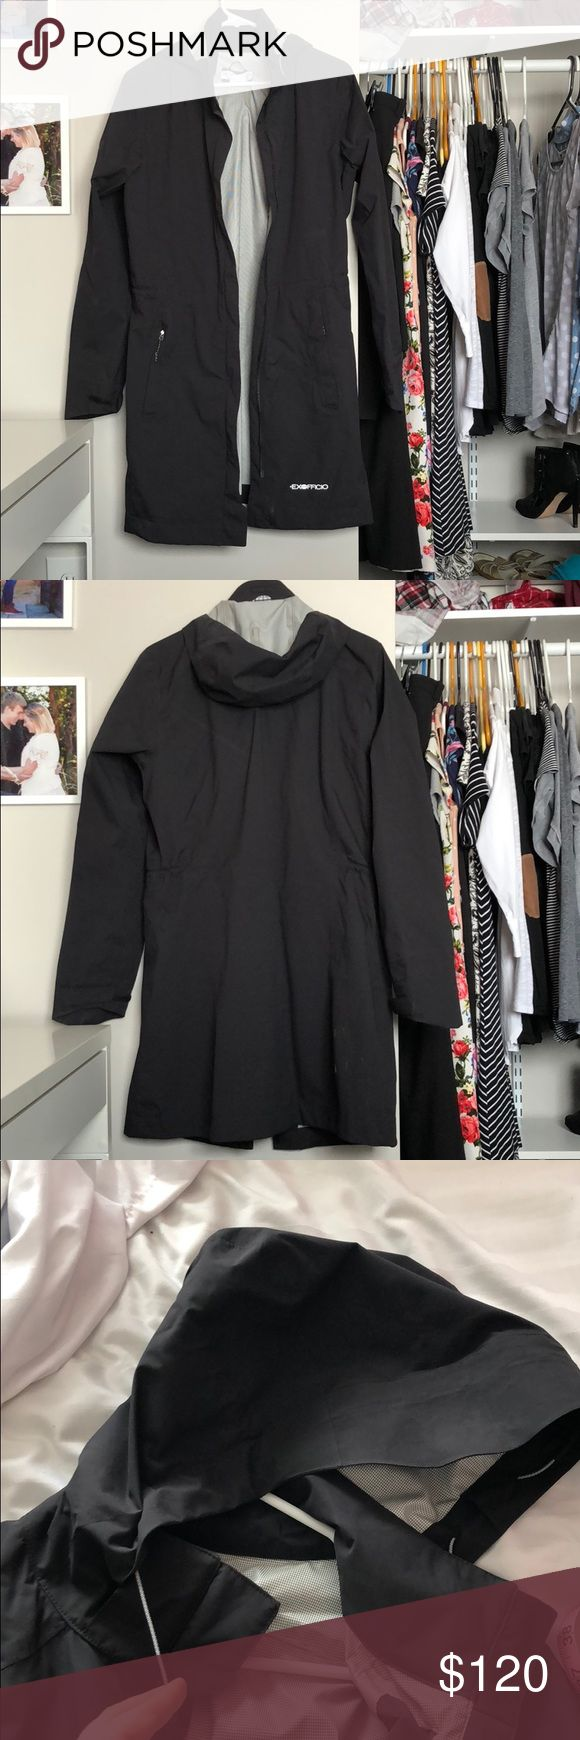 ⚫️ Black Rain Coat with outside and inside pockets Really great jacket! Hood and waist have ties to provides a better and more flattering look. Pockets on the outside zip up so nothing gets wet. 4 Pocket's inside of various sizes. Sleeves tighten so water doesn't get in under your wrists. Women's medium, true to size. Only worn once, in perfect condition.   Measurements:  Length: about 34 inches Exofficio Jackets & Coats Trench Coats